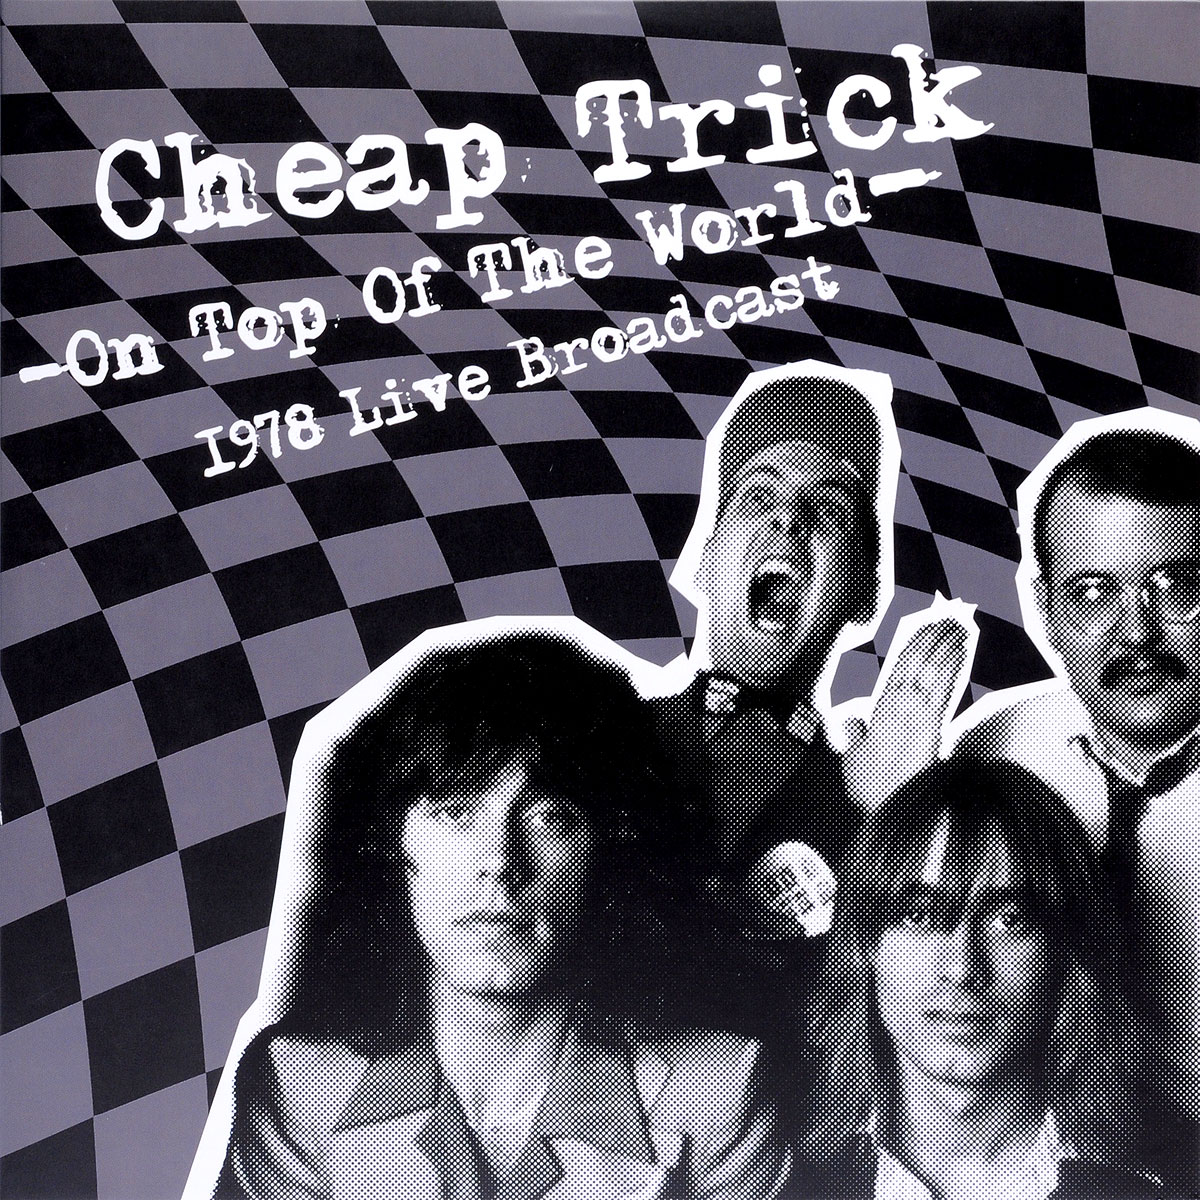 Cheap Trick Cheap Trick. On Top Of The World. 1978 Live Broadcast (2 LP) 2016 bigbang world our made final in seoul live